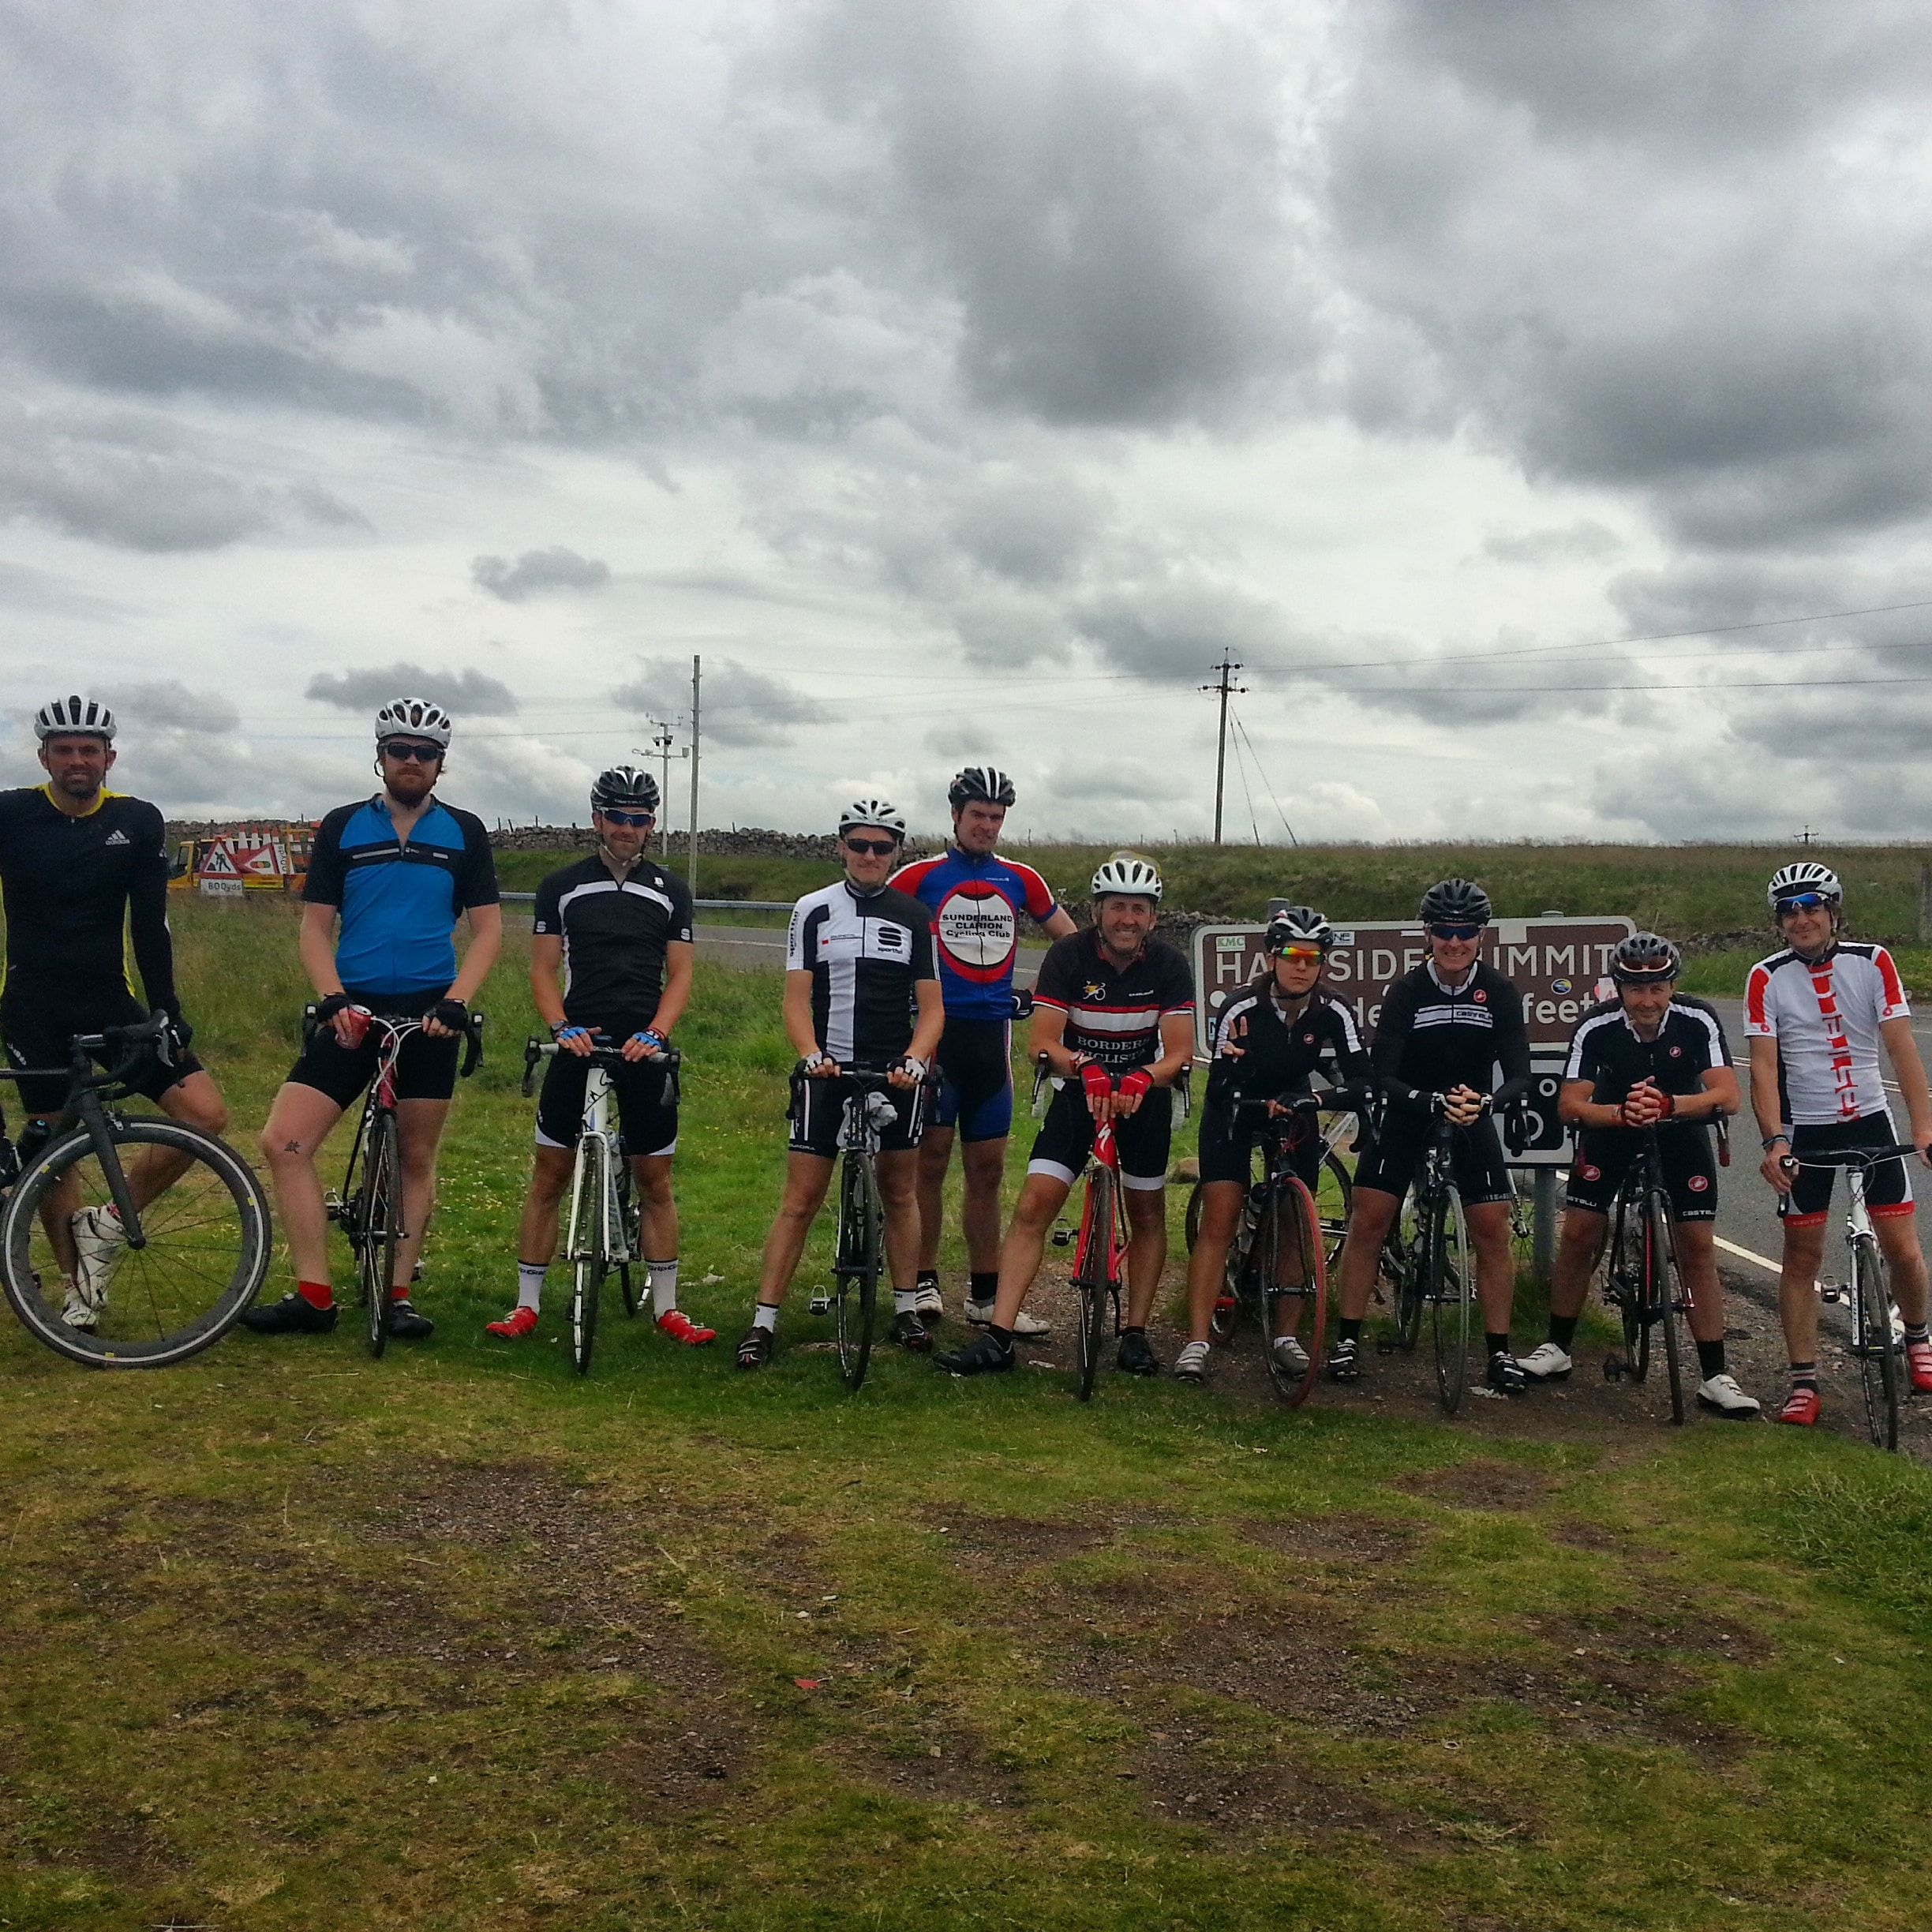 Team Photo, Dun Fell, Radar Station, Climbing, British Cycling, SSVCC, Great Dunn Fell, South Shields Velo Cycling ClubDun Fell, Tyne & Wear, Radar Station